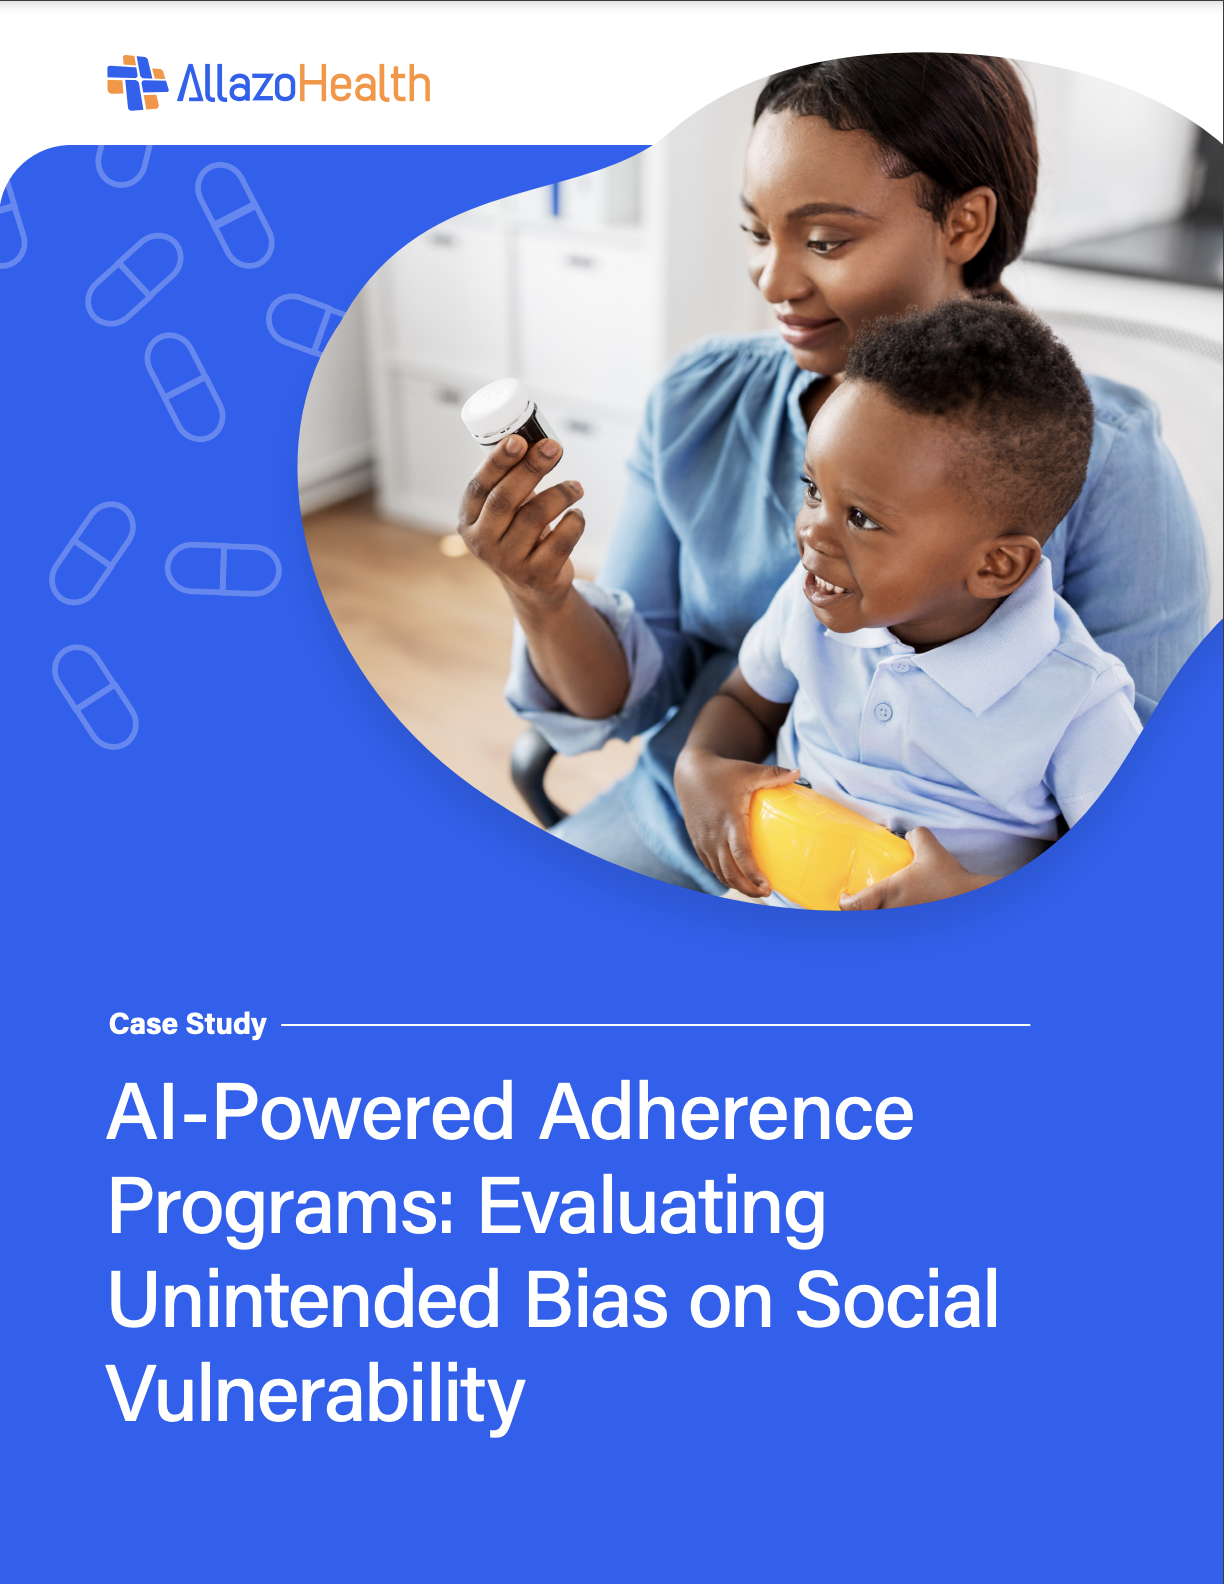 AI-Powered Adherence Program: Evaluating Unintended Bias on Social Vulnerability